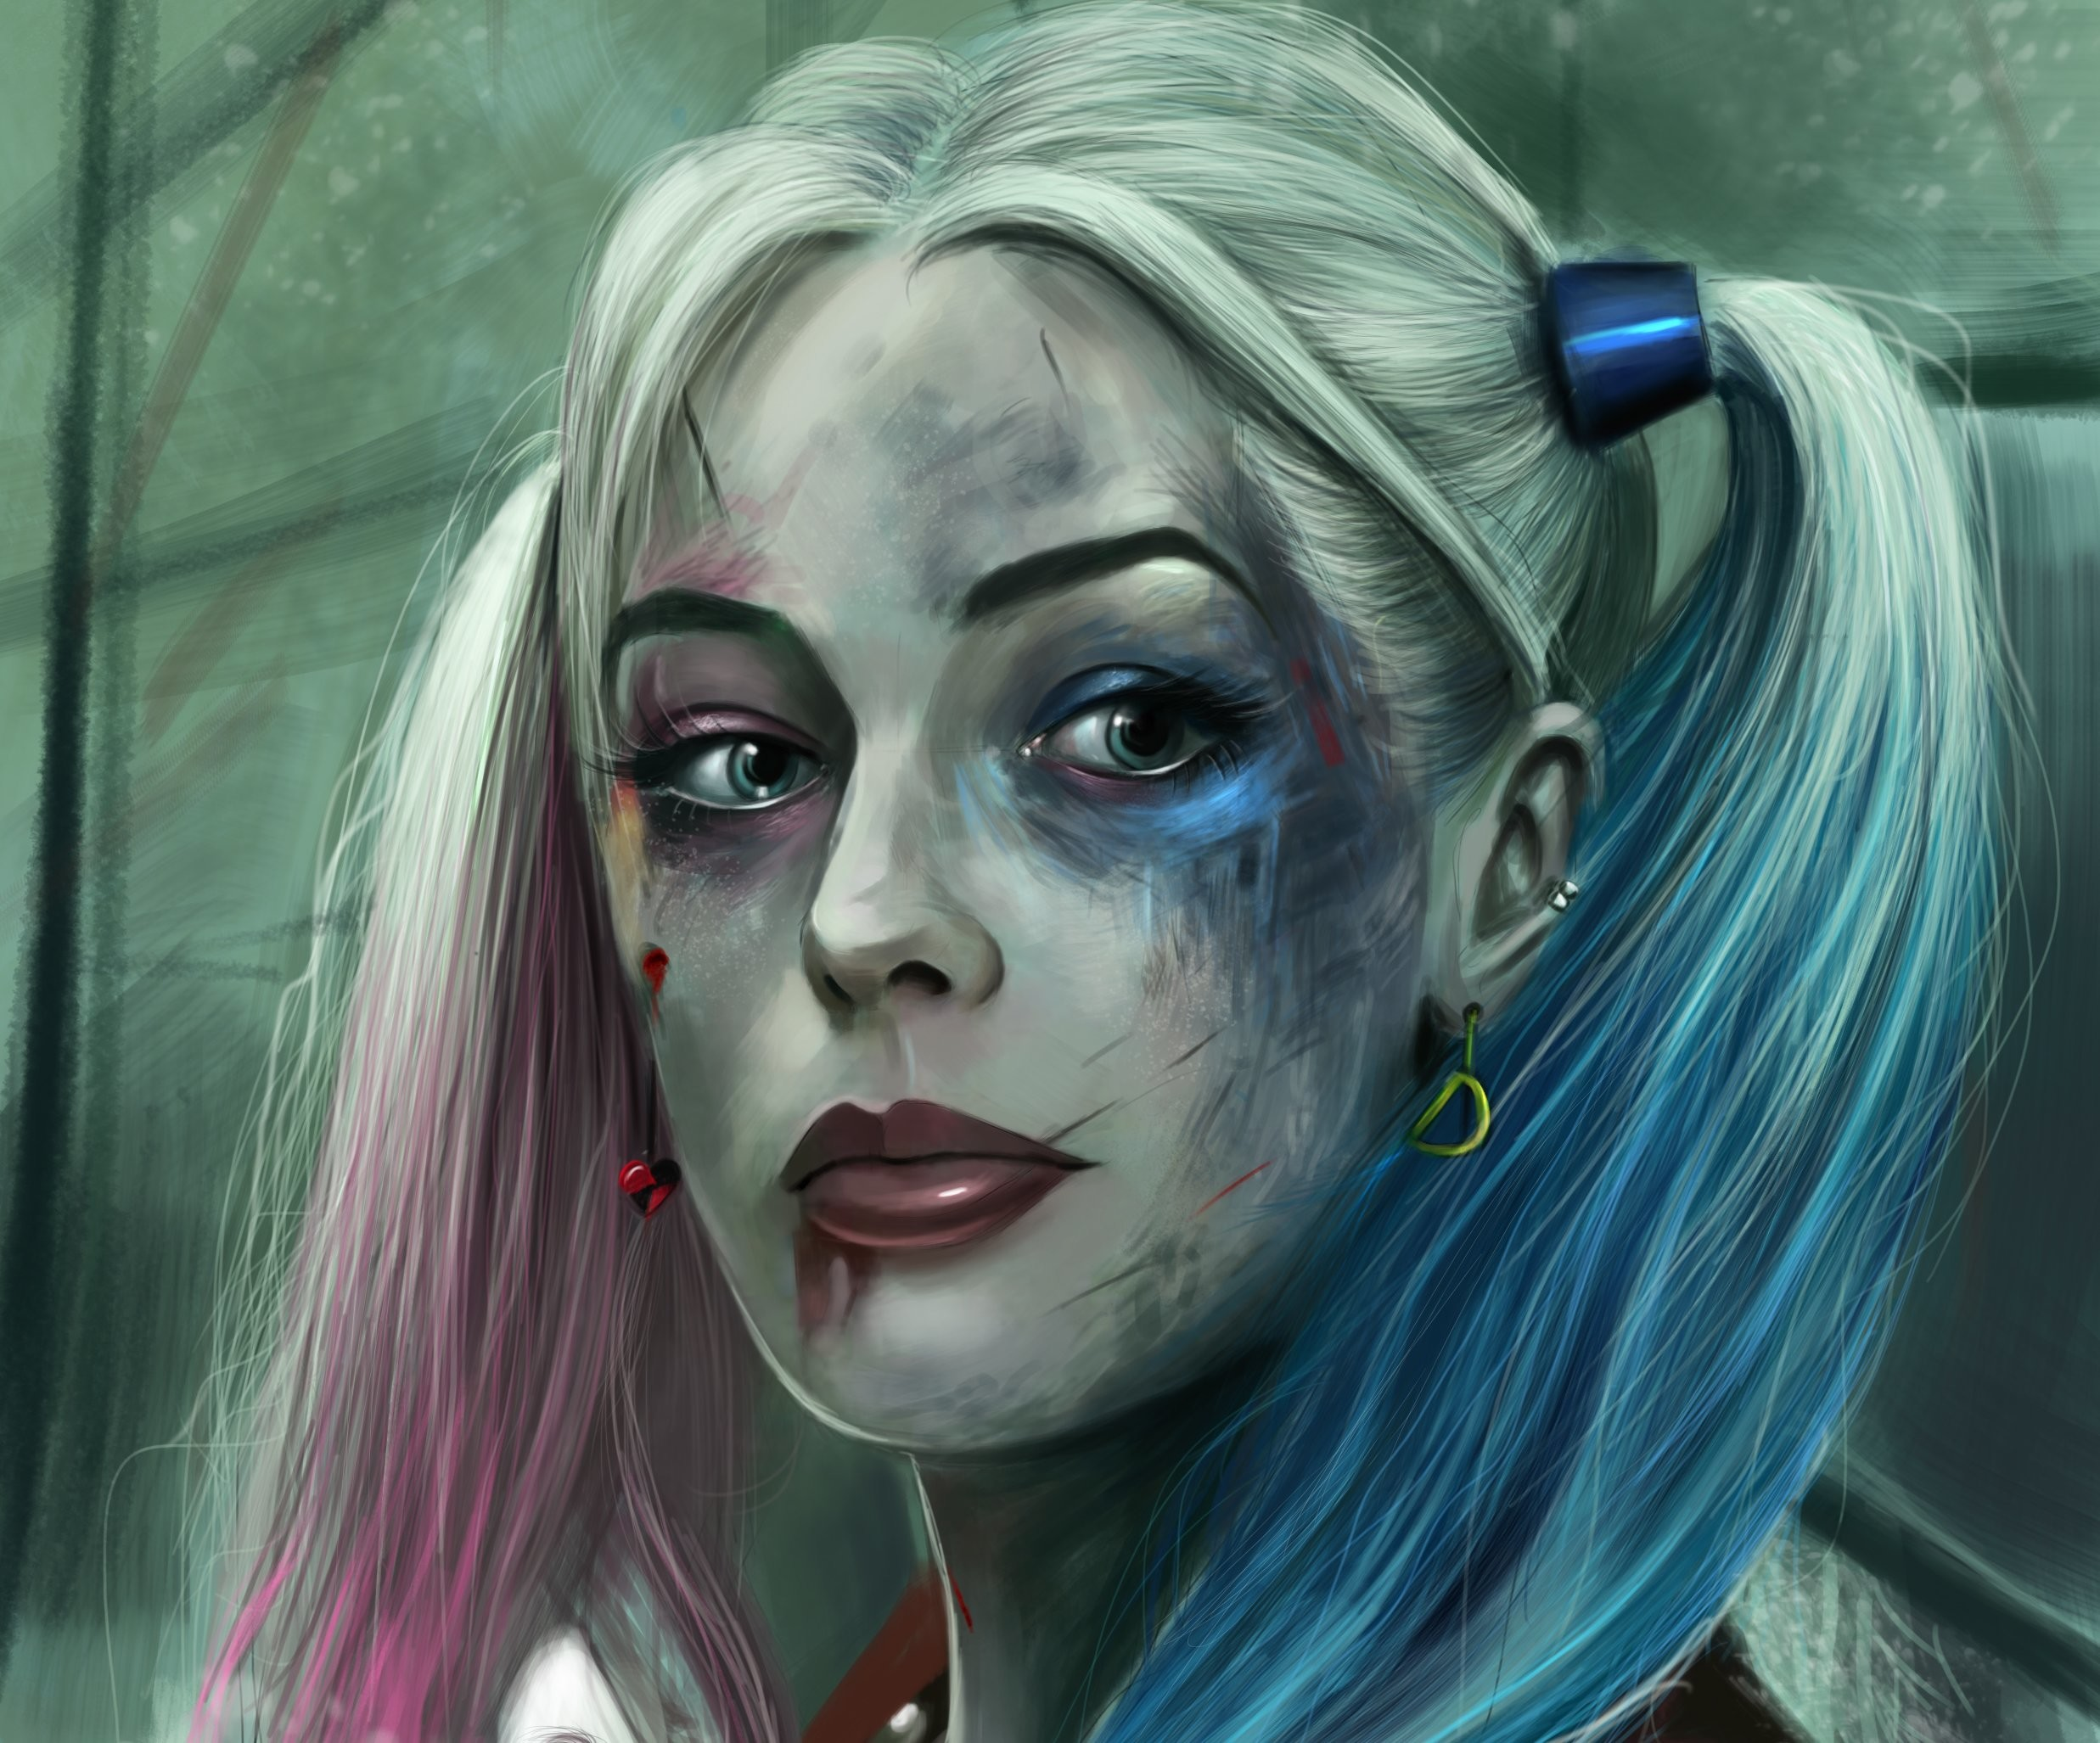 1920x1080 Harley Quinn Wallpaper With Image Resolution Pixel You Can Use This As Background